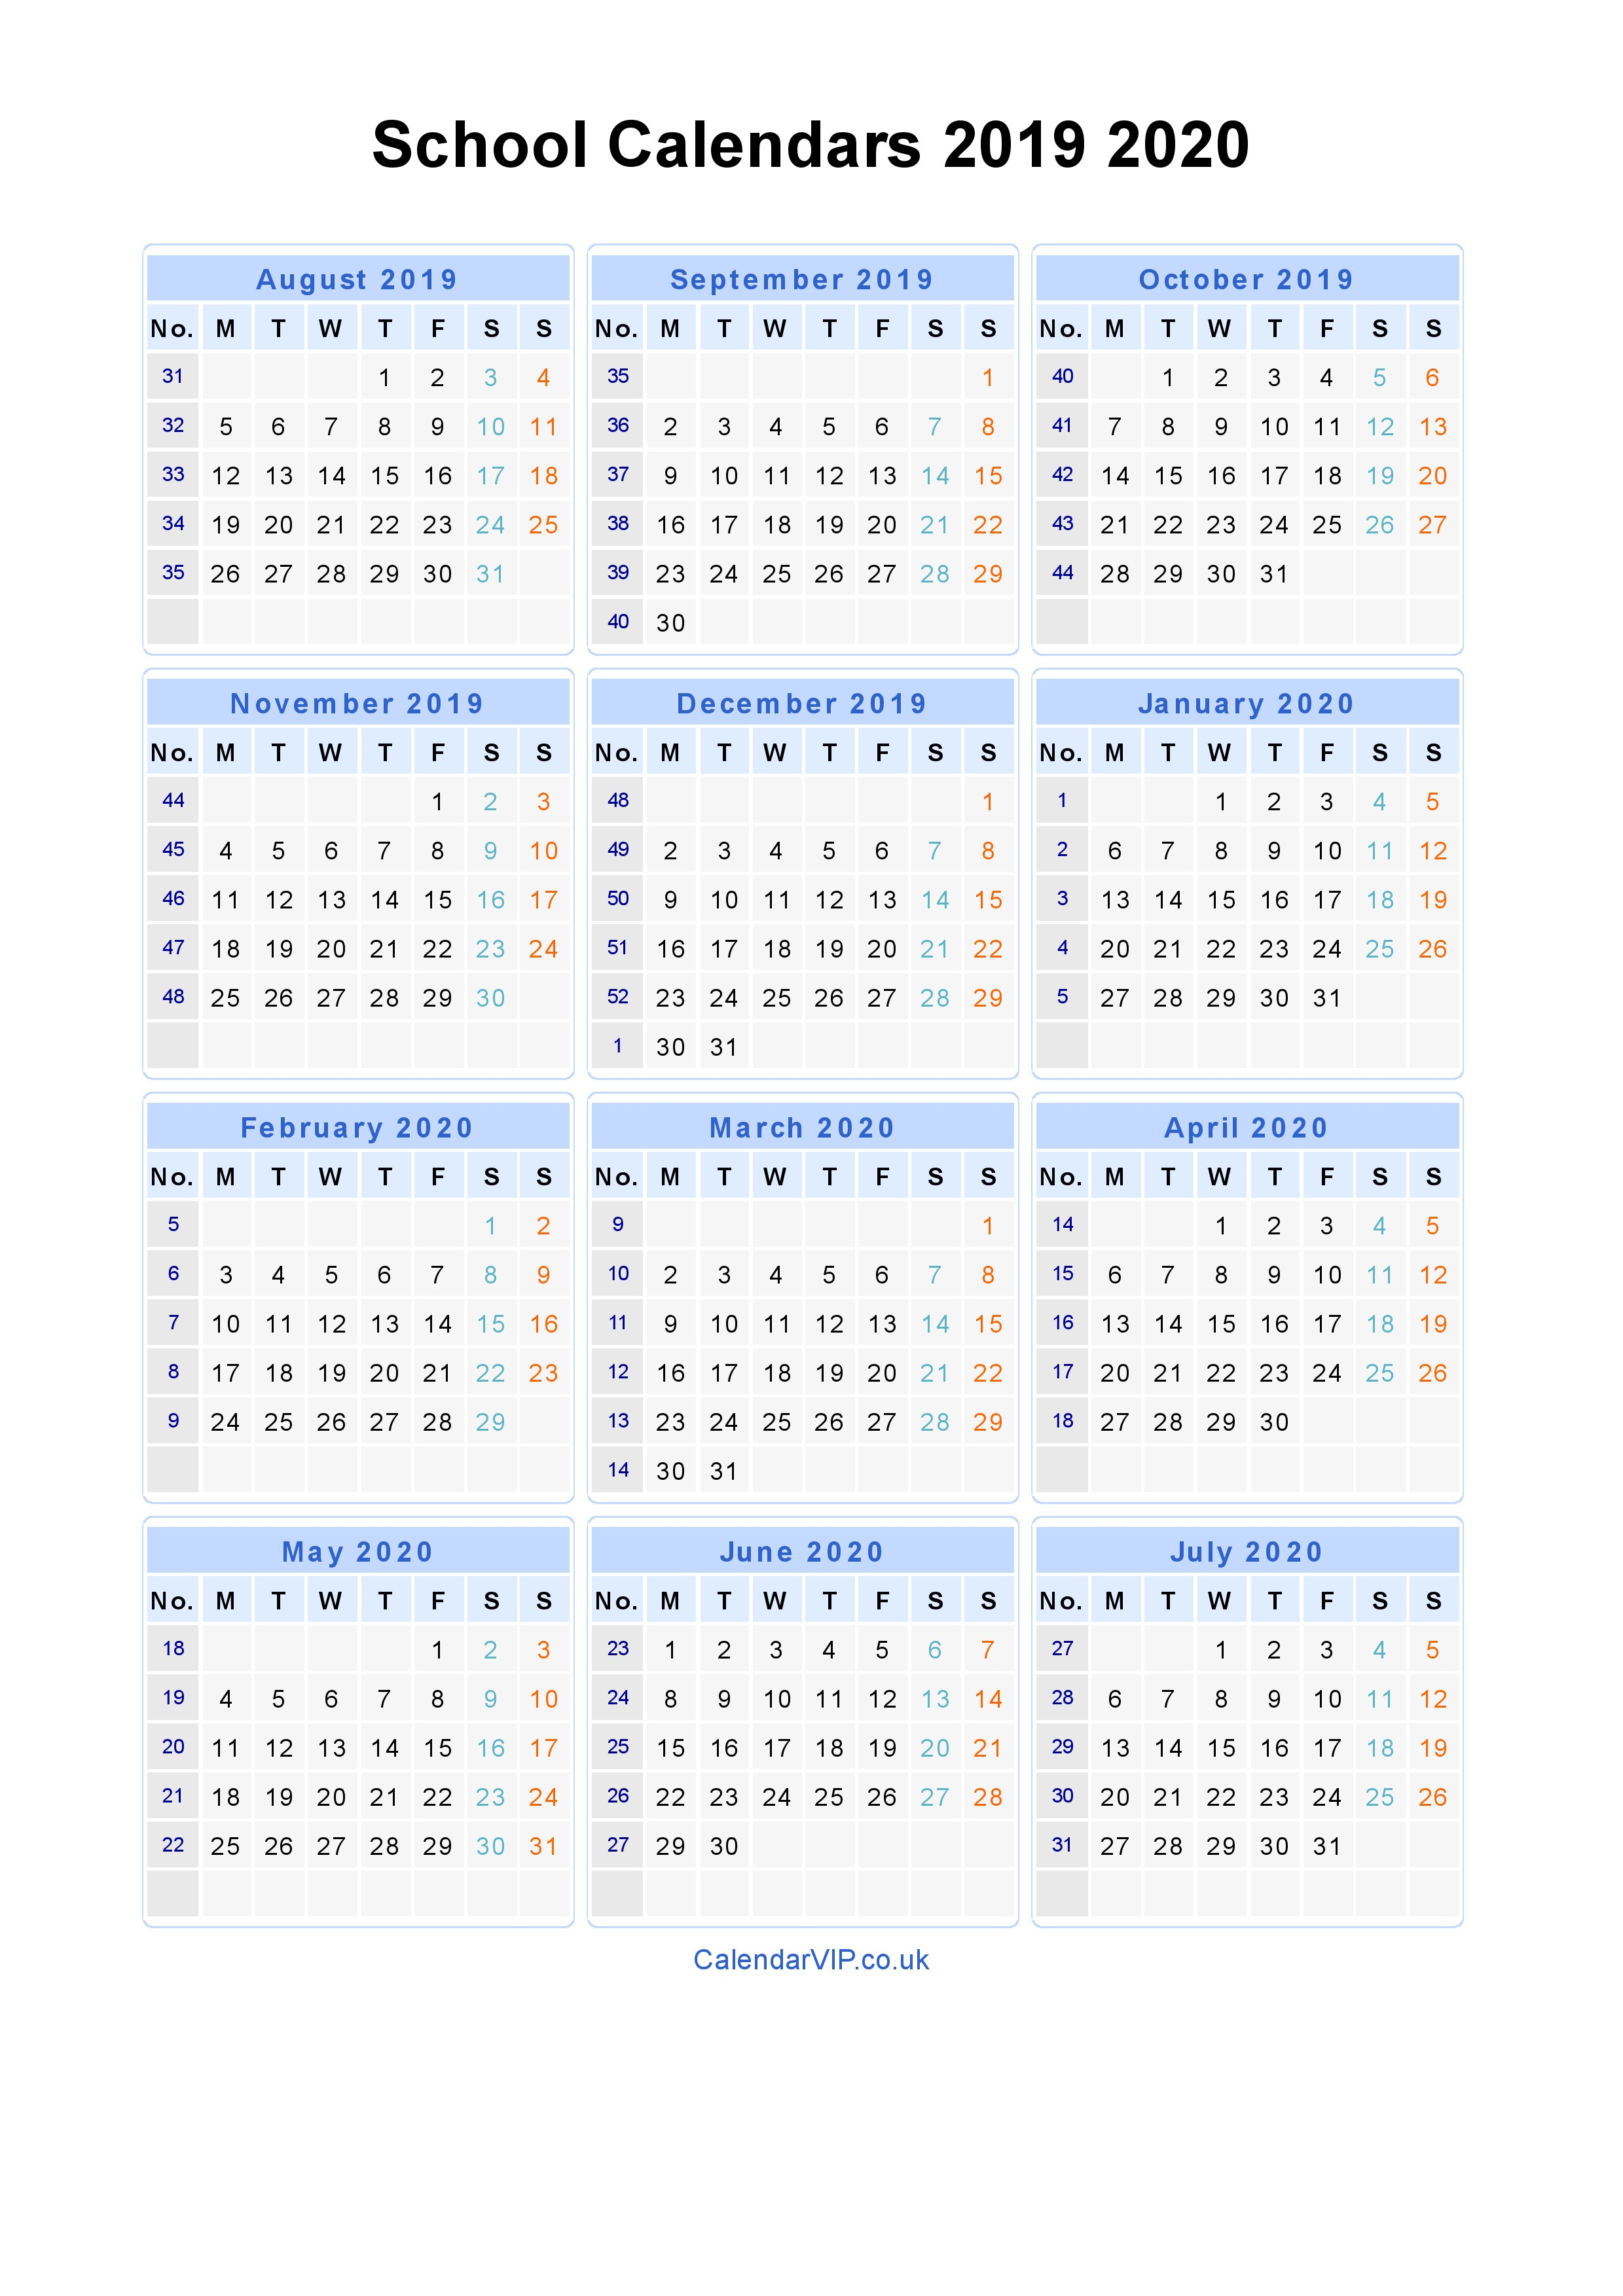 Academic Year Calendar 2019 With School Calendars 2020 From August To July